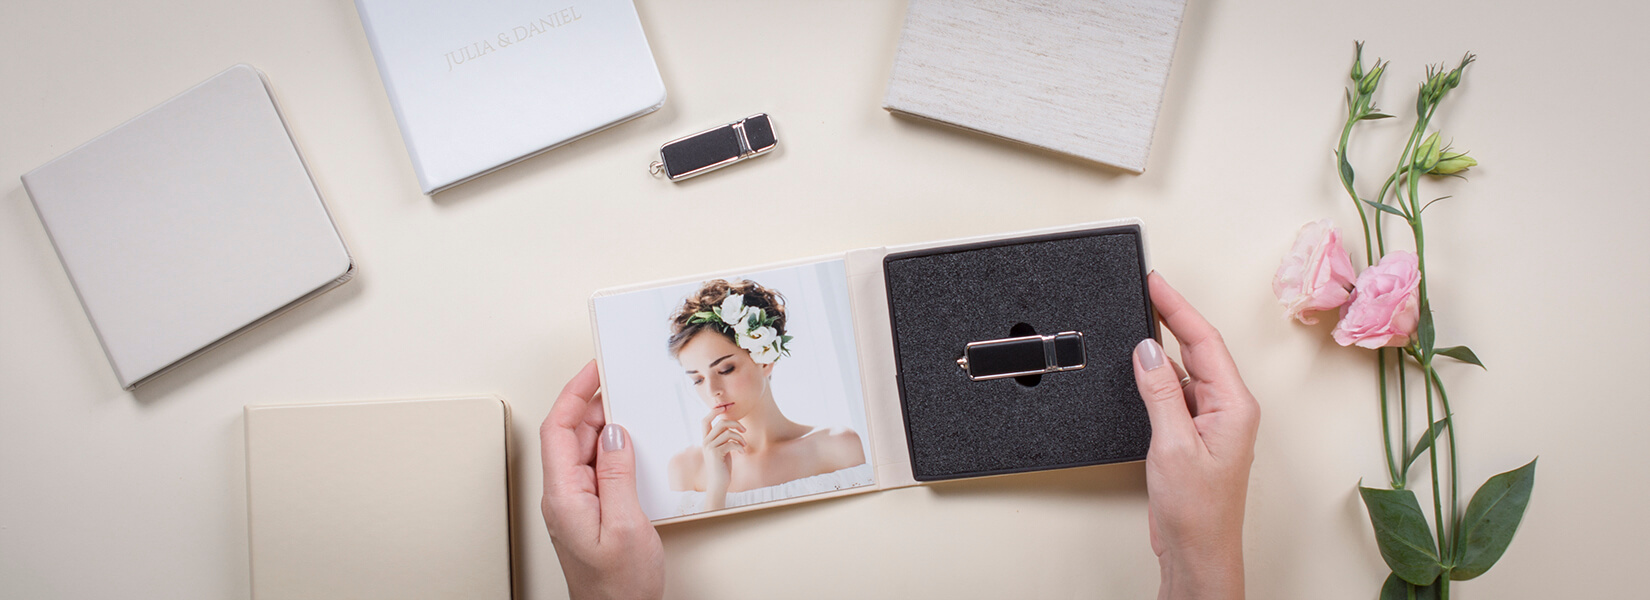 USB Box Magnetic usb box data carrier professional nphoto usb case without usb professional photographer